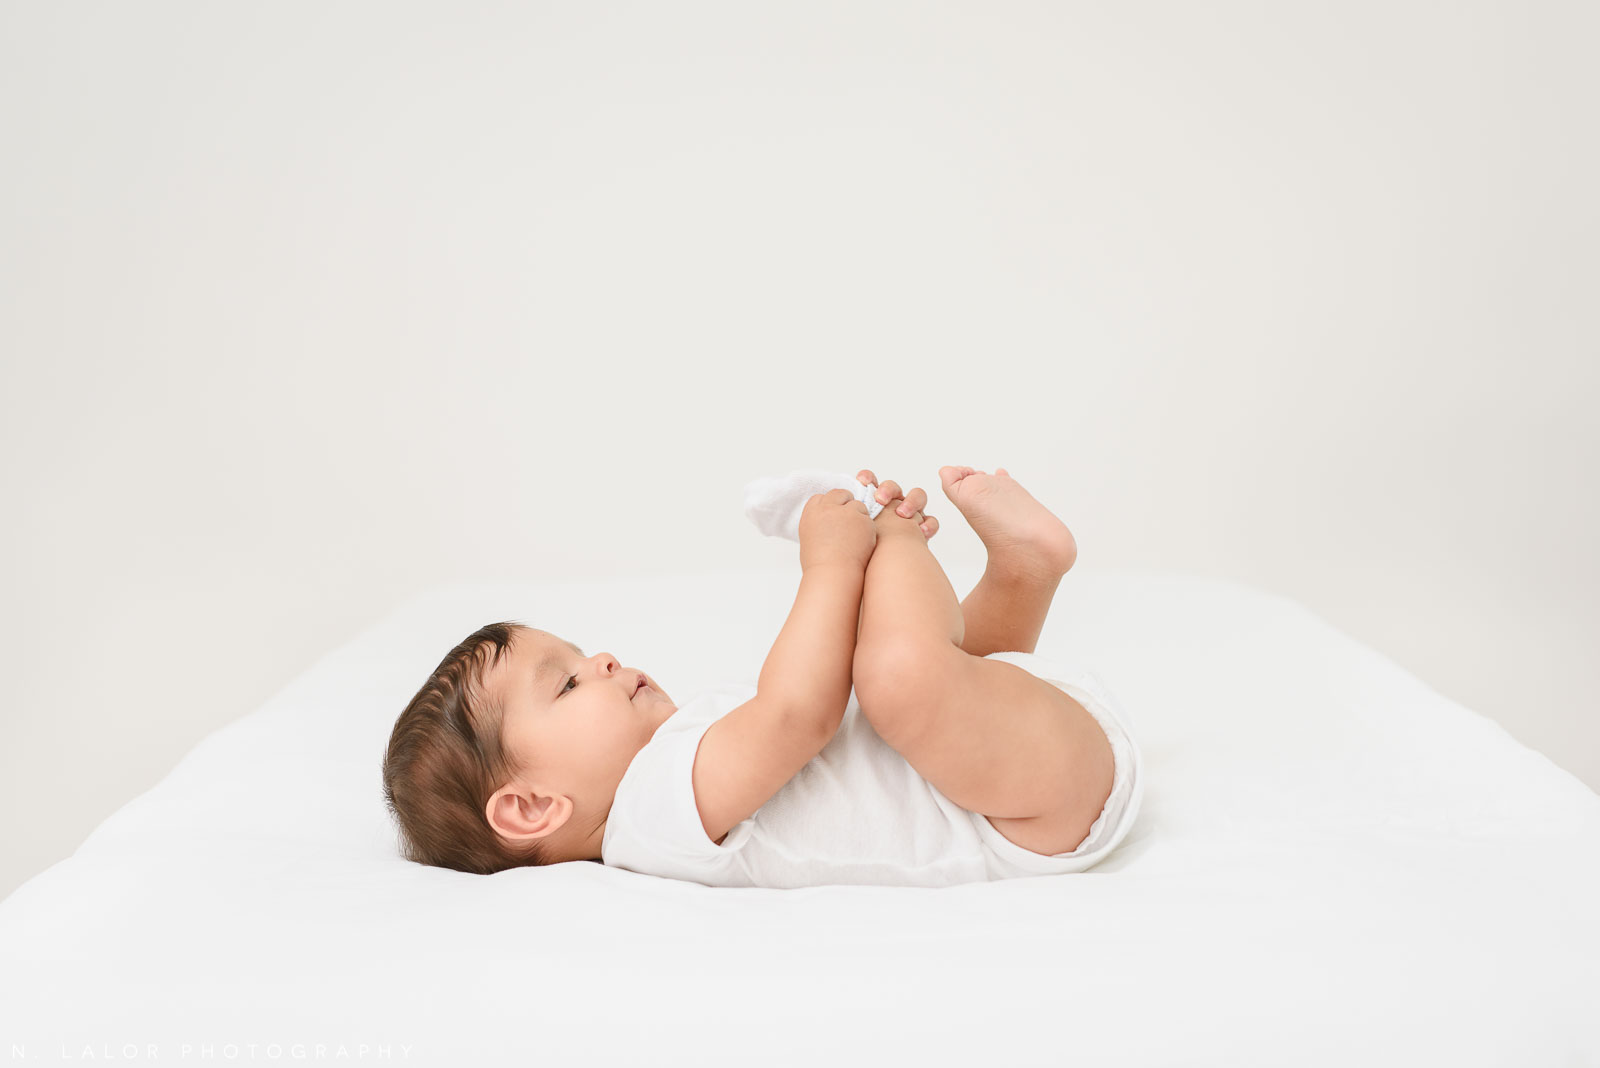 Image of baby in white shirt playing with toes during photo shoot. Milestone Sessions by N. Lalor Photography. Studio in Greenwich, Connecticut.